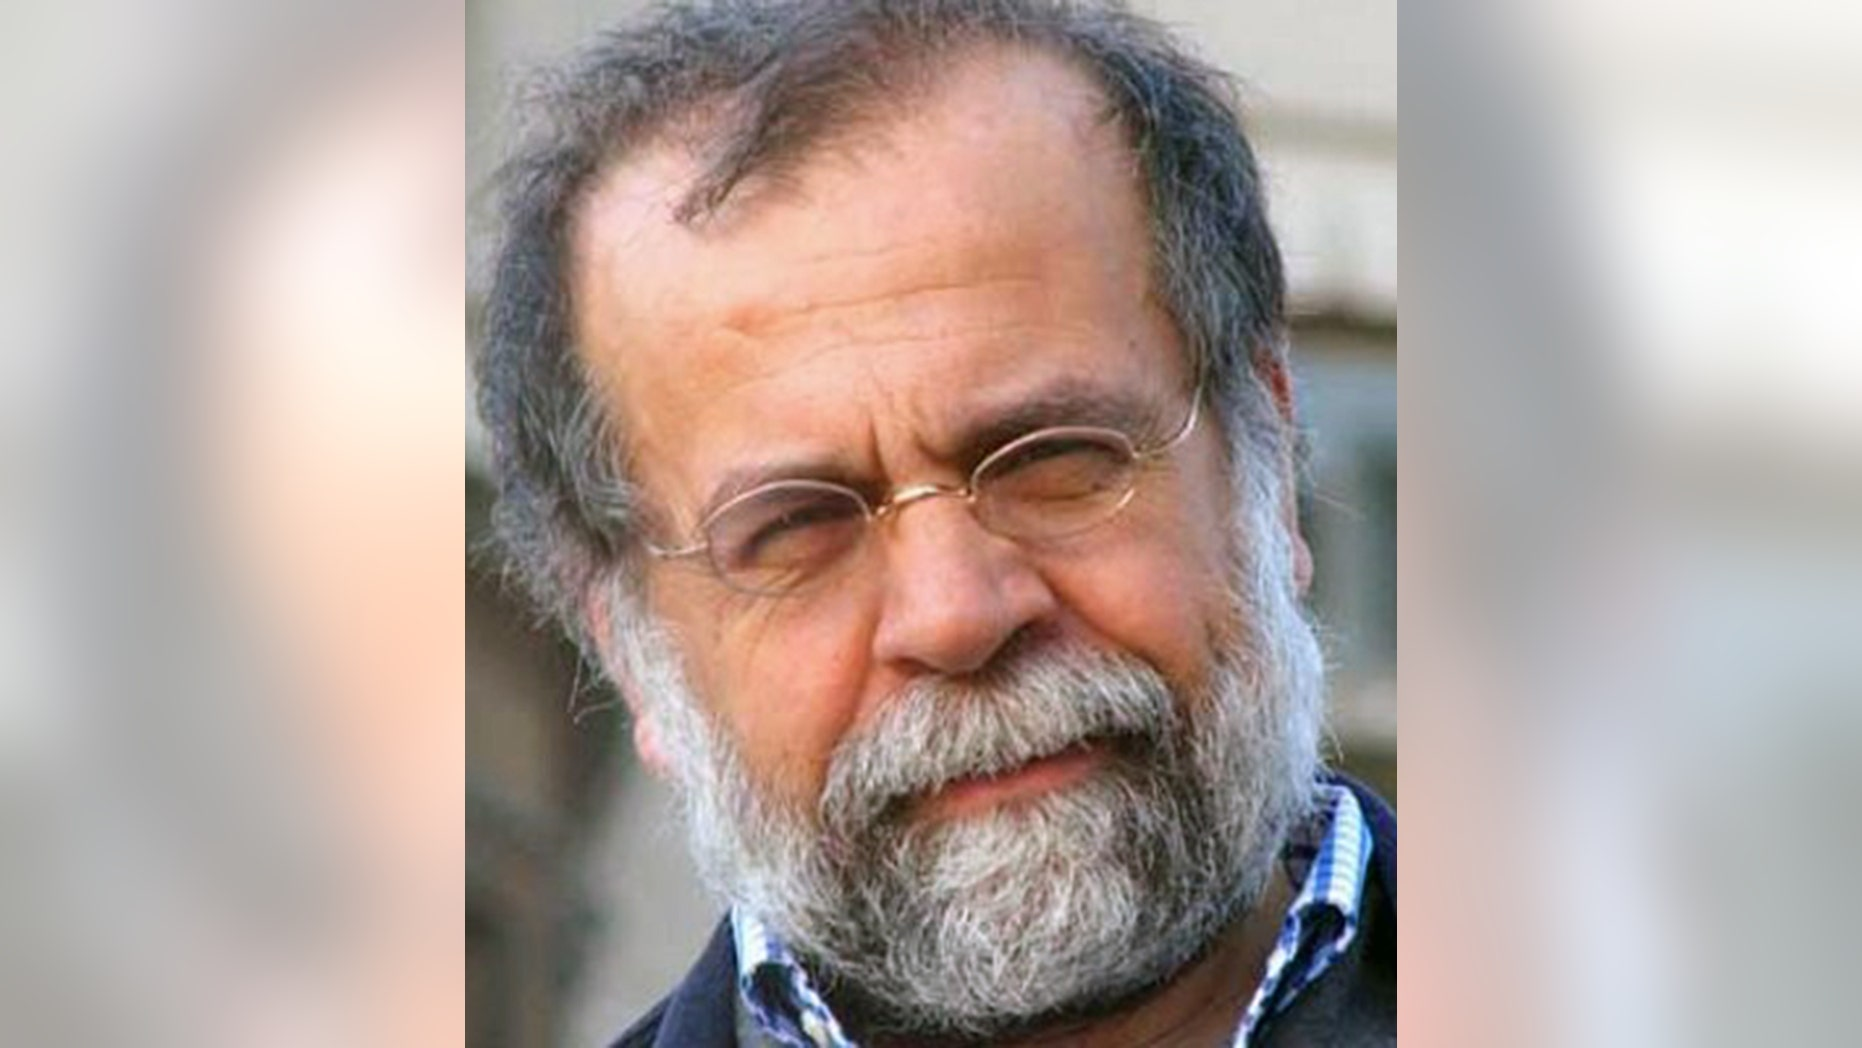 Student group decries Columbia prof's 'disturbing' Israel-ISIS comparison